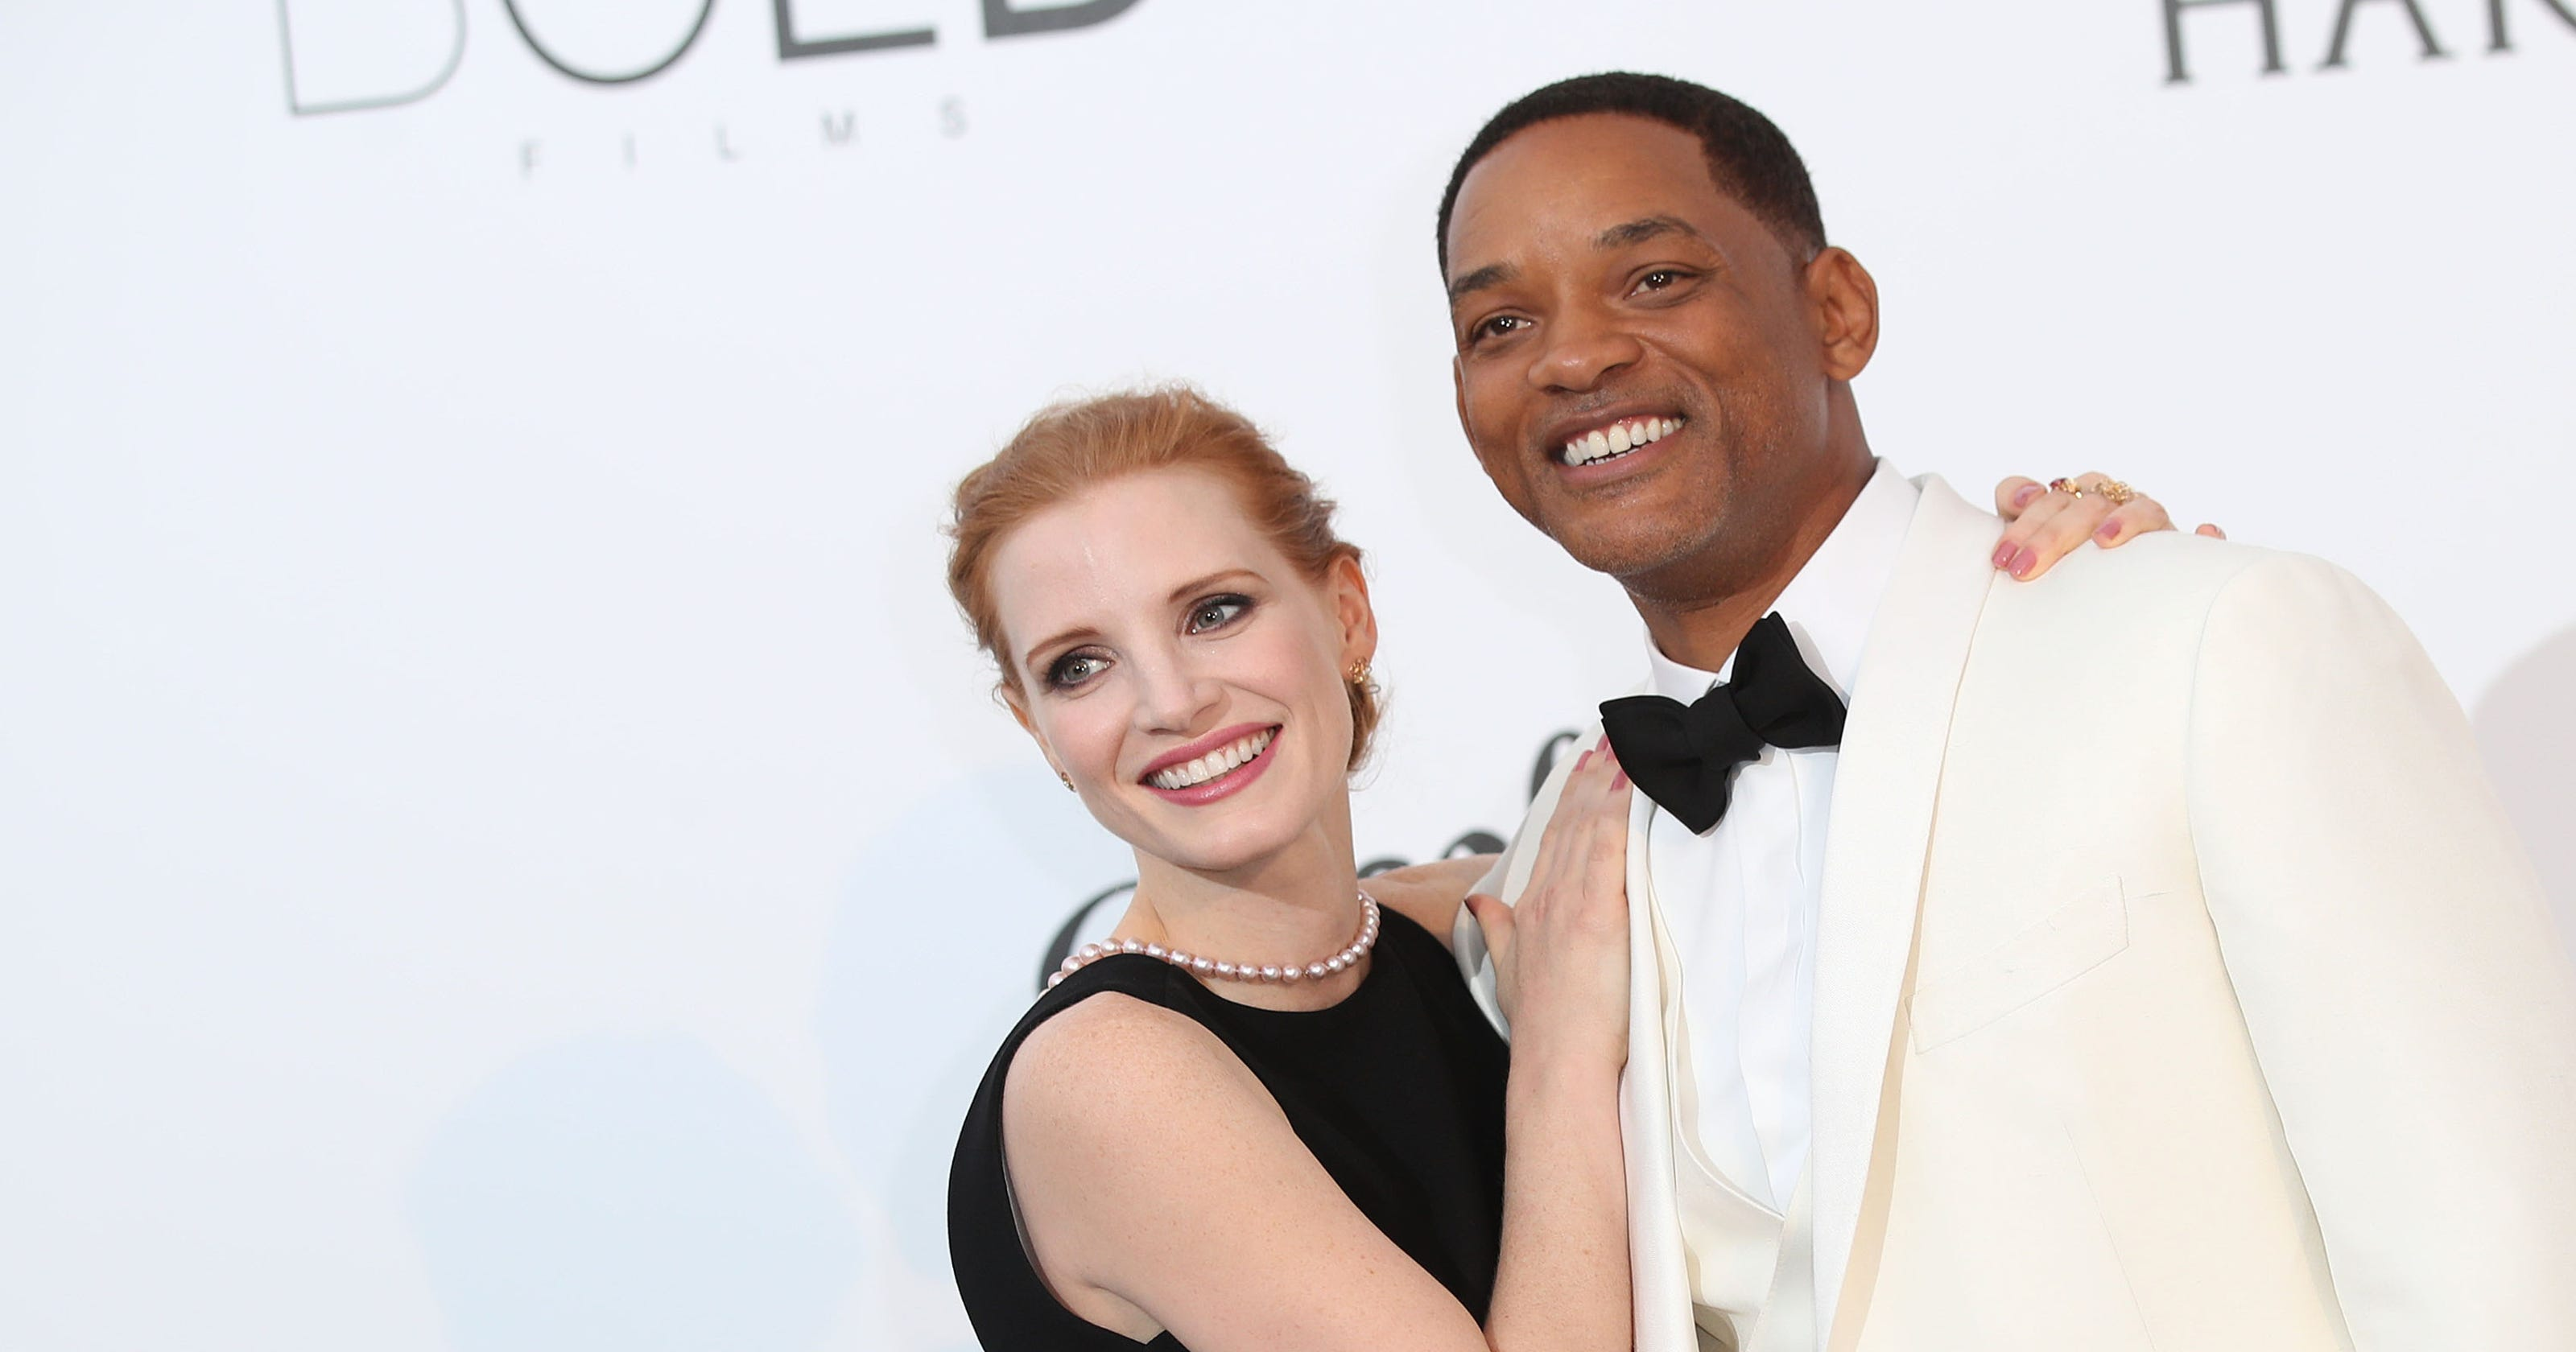 amfAR Gala: Stars turn out for lavish AIDS fundraiser in Cannes